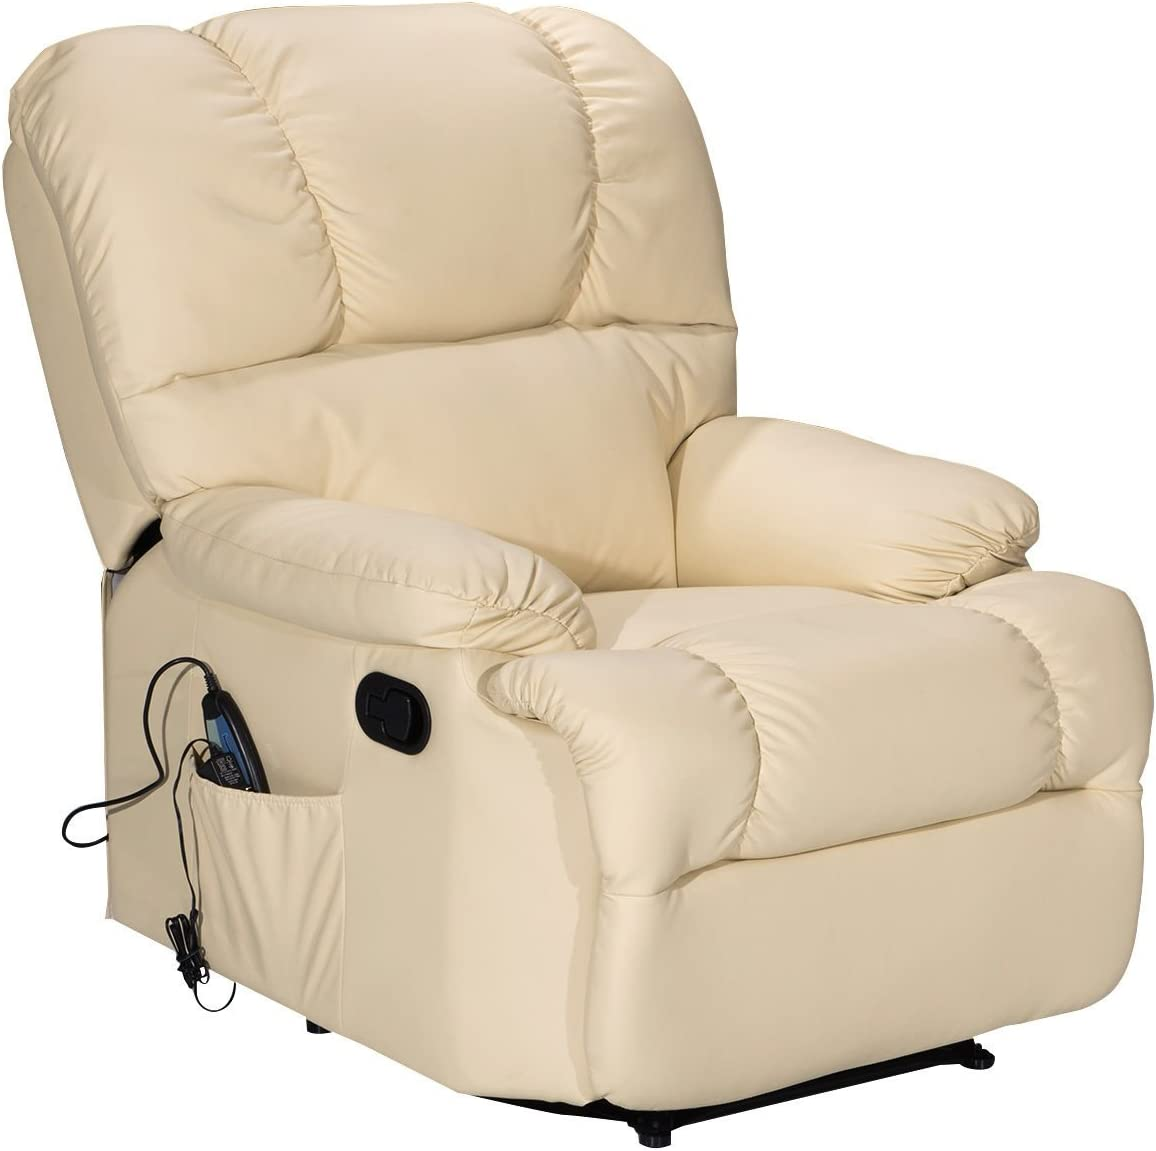 61VbkB4s6kL. AC SL1200 - What Is The Best Living Room Chair For Neck Pain - ChairPicks